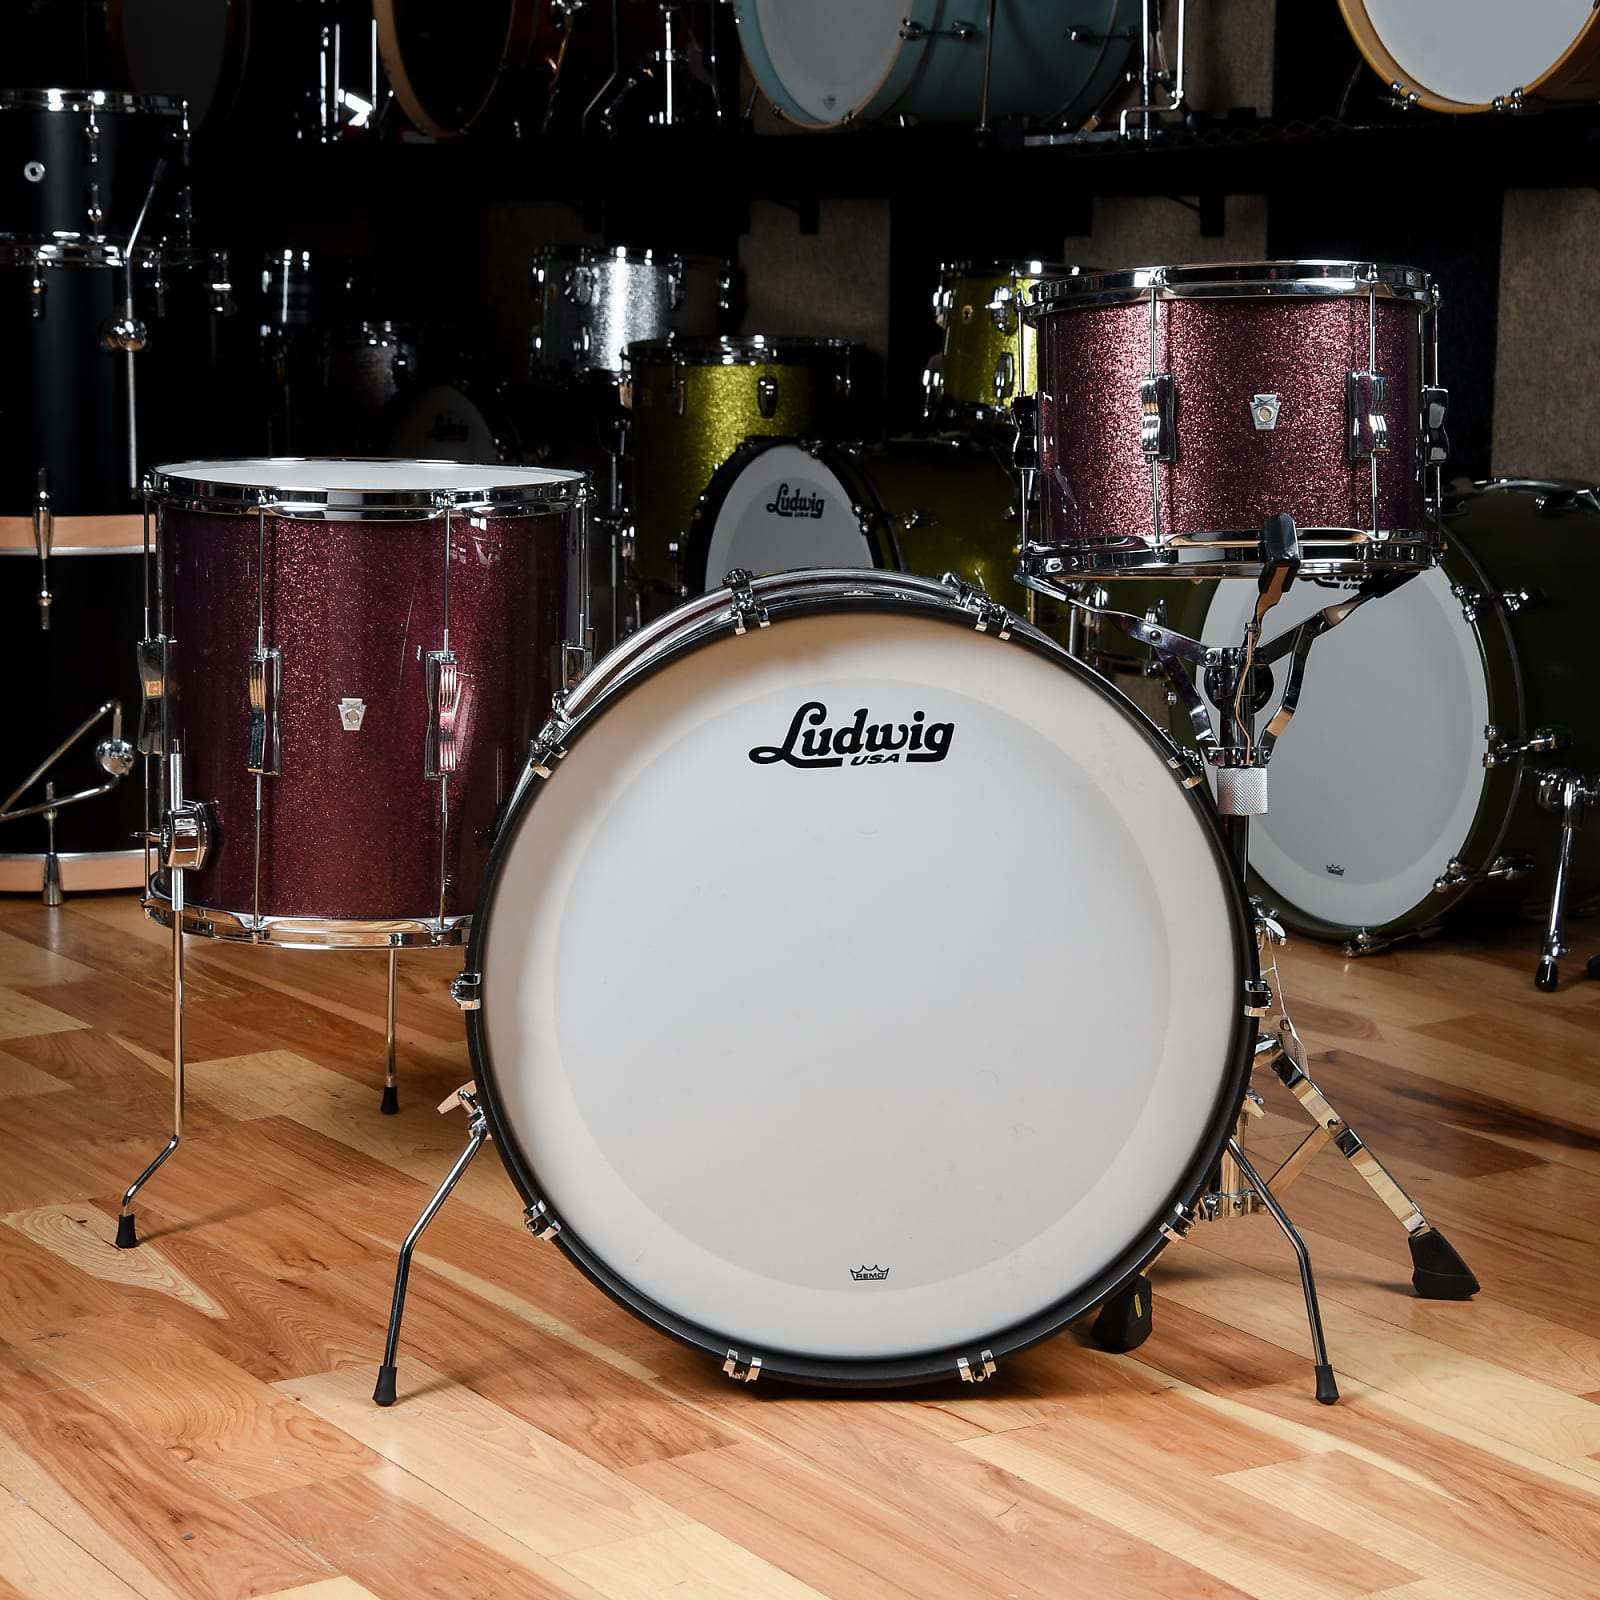 Ludwig Club Date 13/16/24 3pc. Drum Kit Burgundy Mist w/Bowtie Lugs & White Interior (CDE Exclusive)